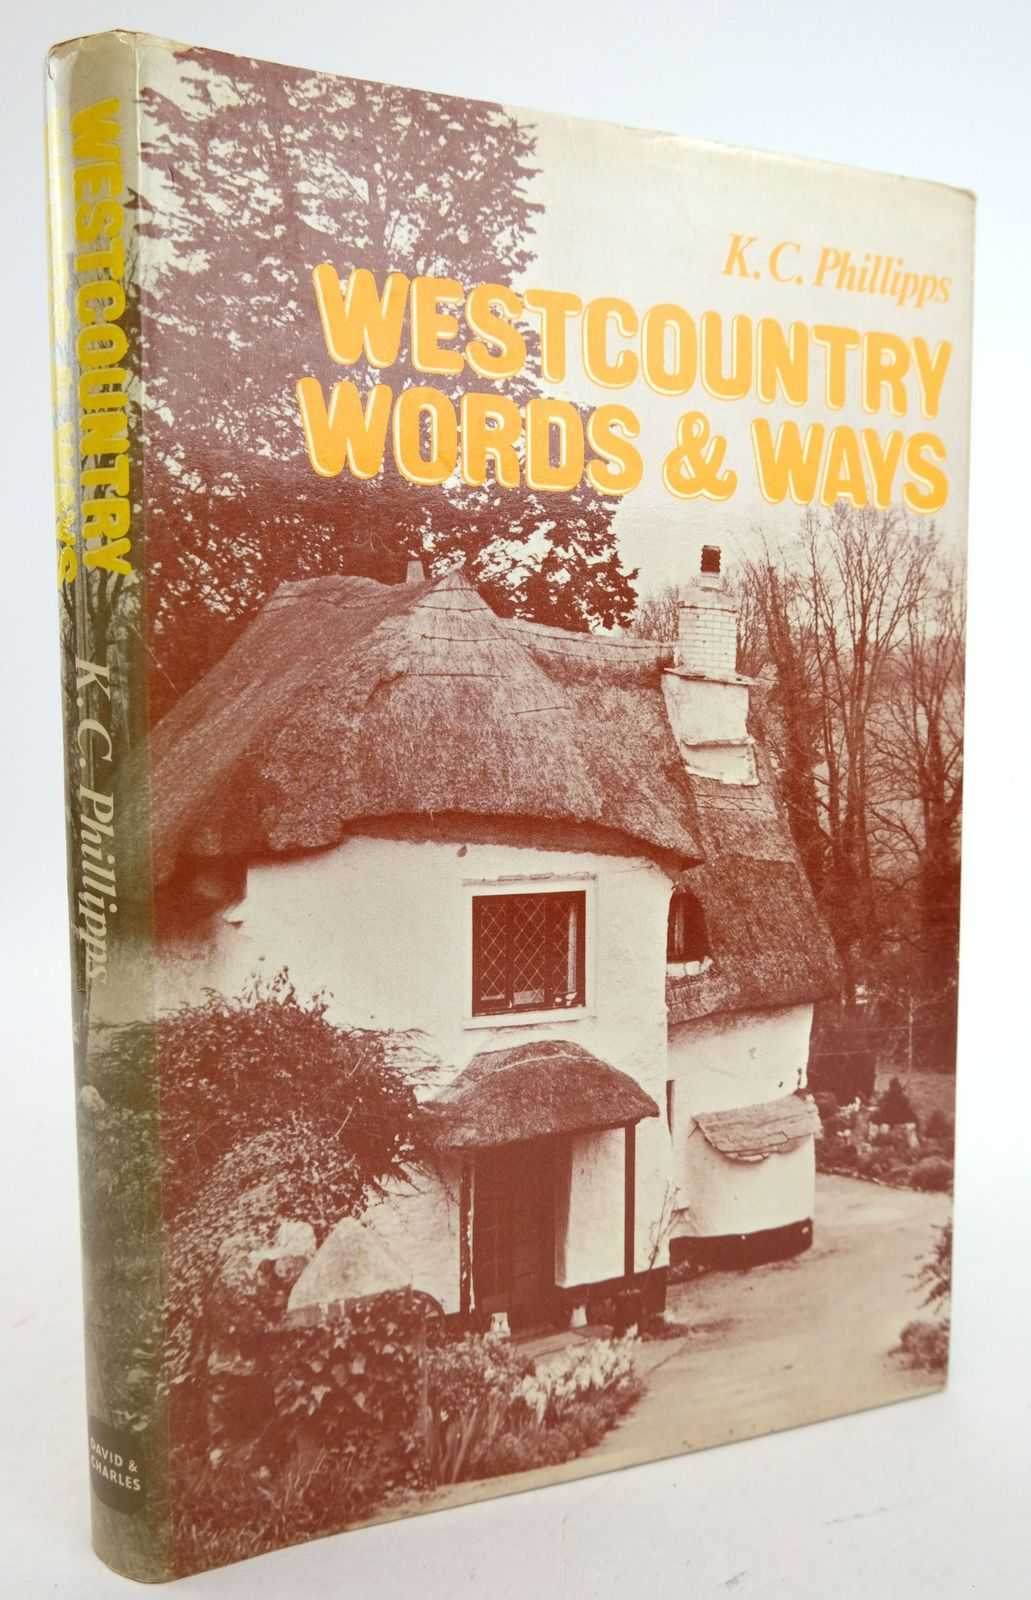 Photo of WESTCOUNTRY WORDS & WAYS written by Phillips, K.C. published by David & Charles (STOCK CODE: 1819757)  for sale by Stella & Rose's Books